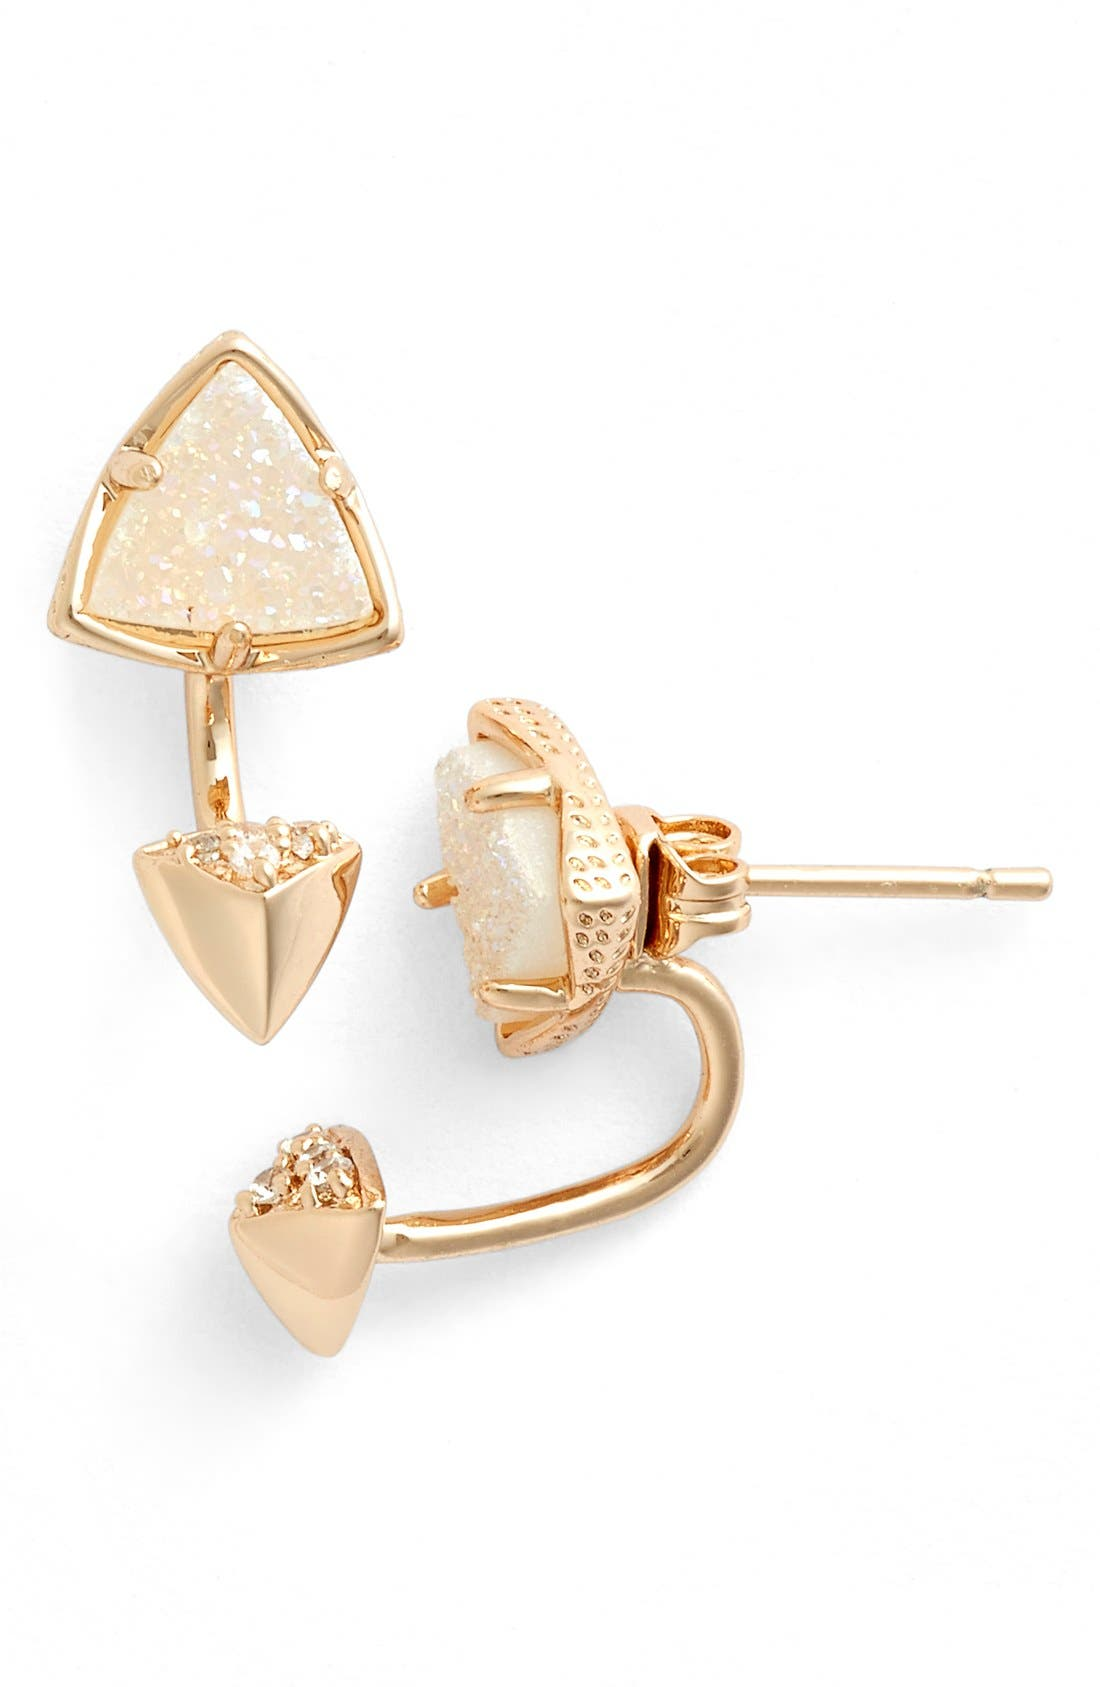 Main Image - Kendra Scott 'Brindley' Drop Back Earrings